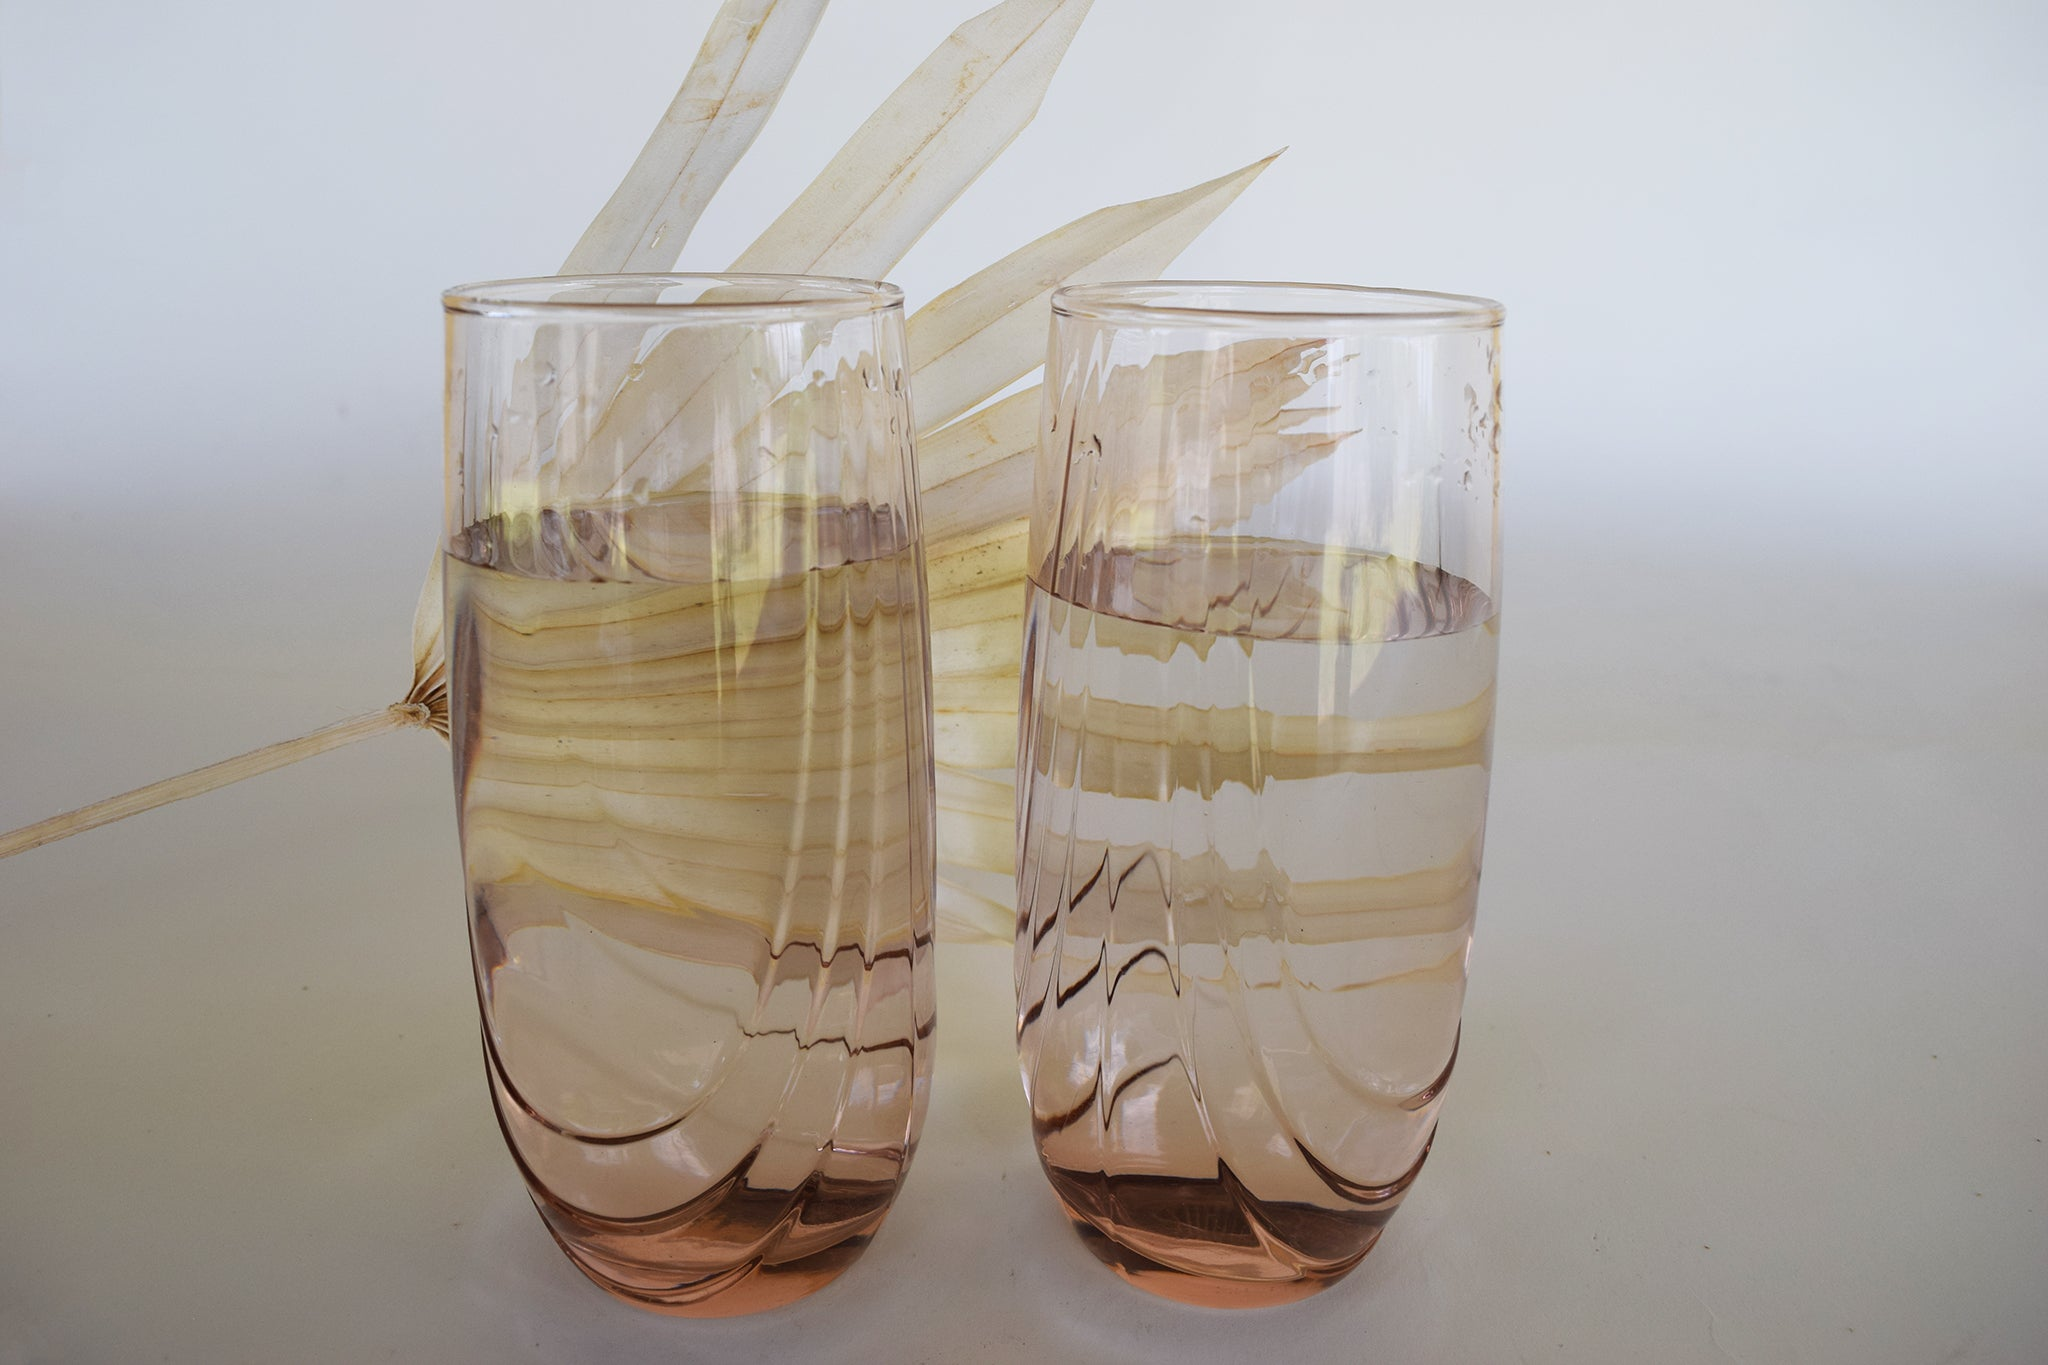 French Pink Drinking Glasses